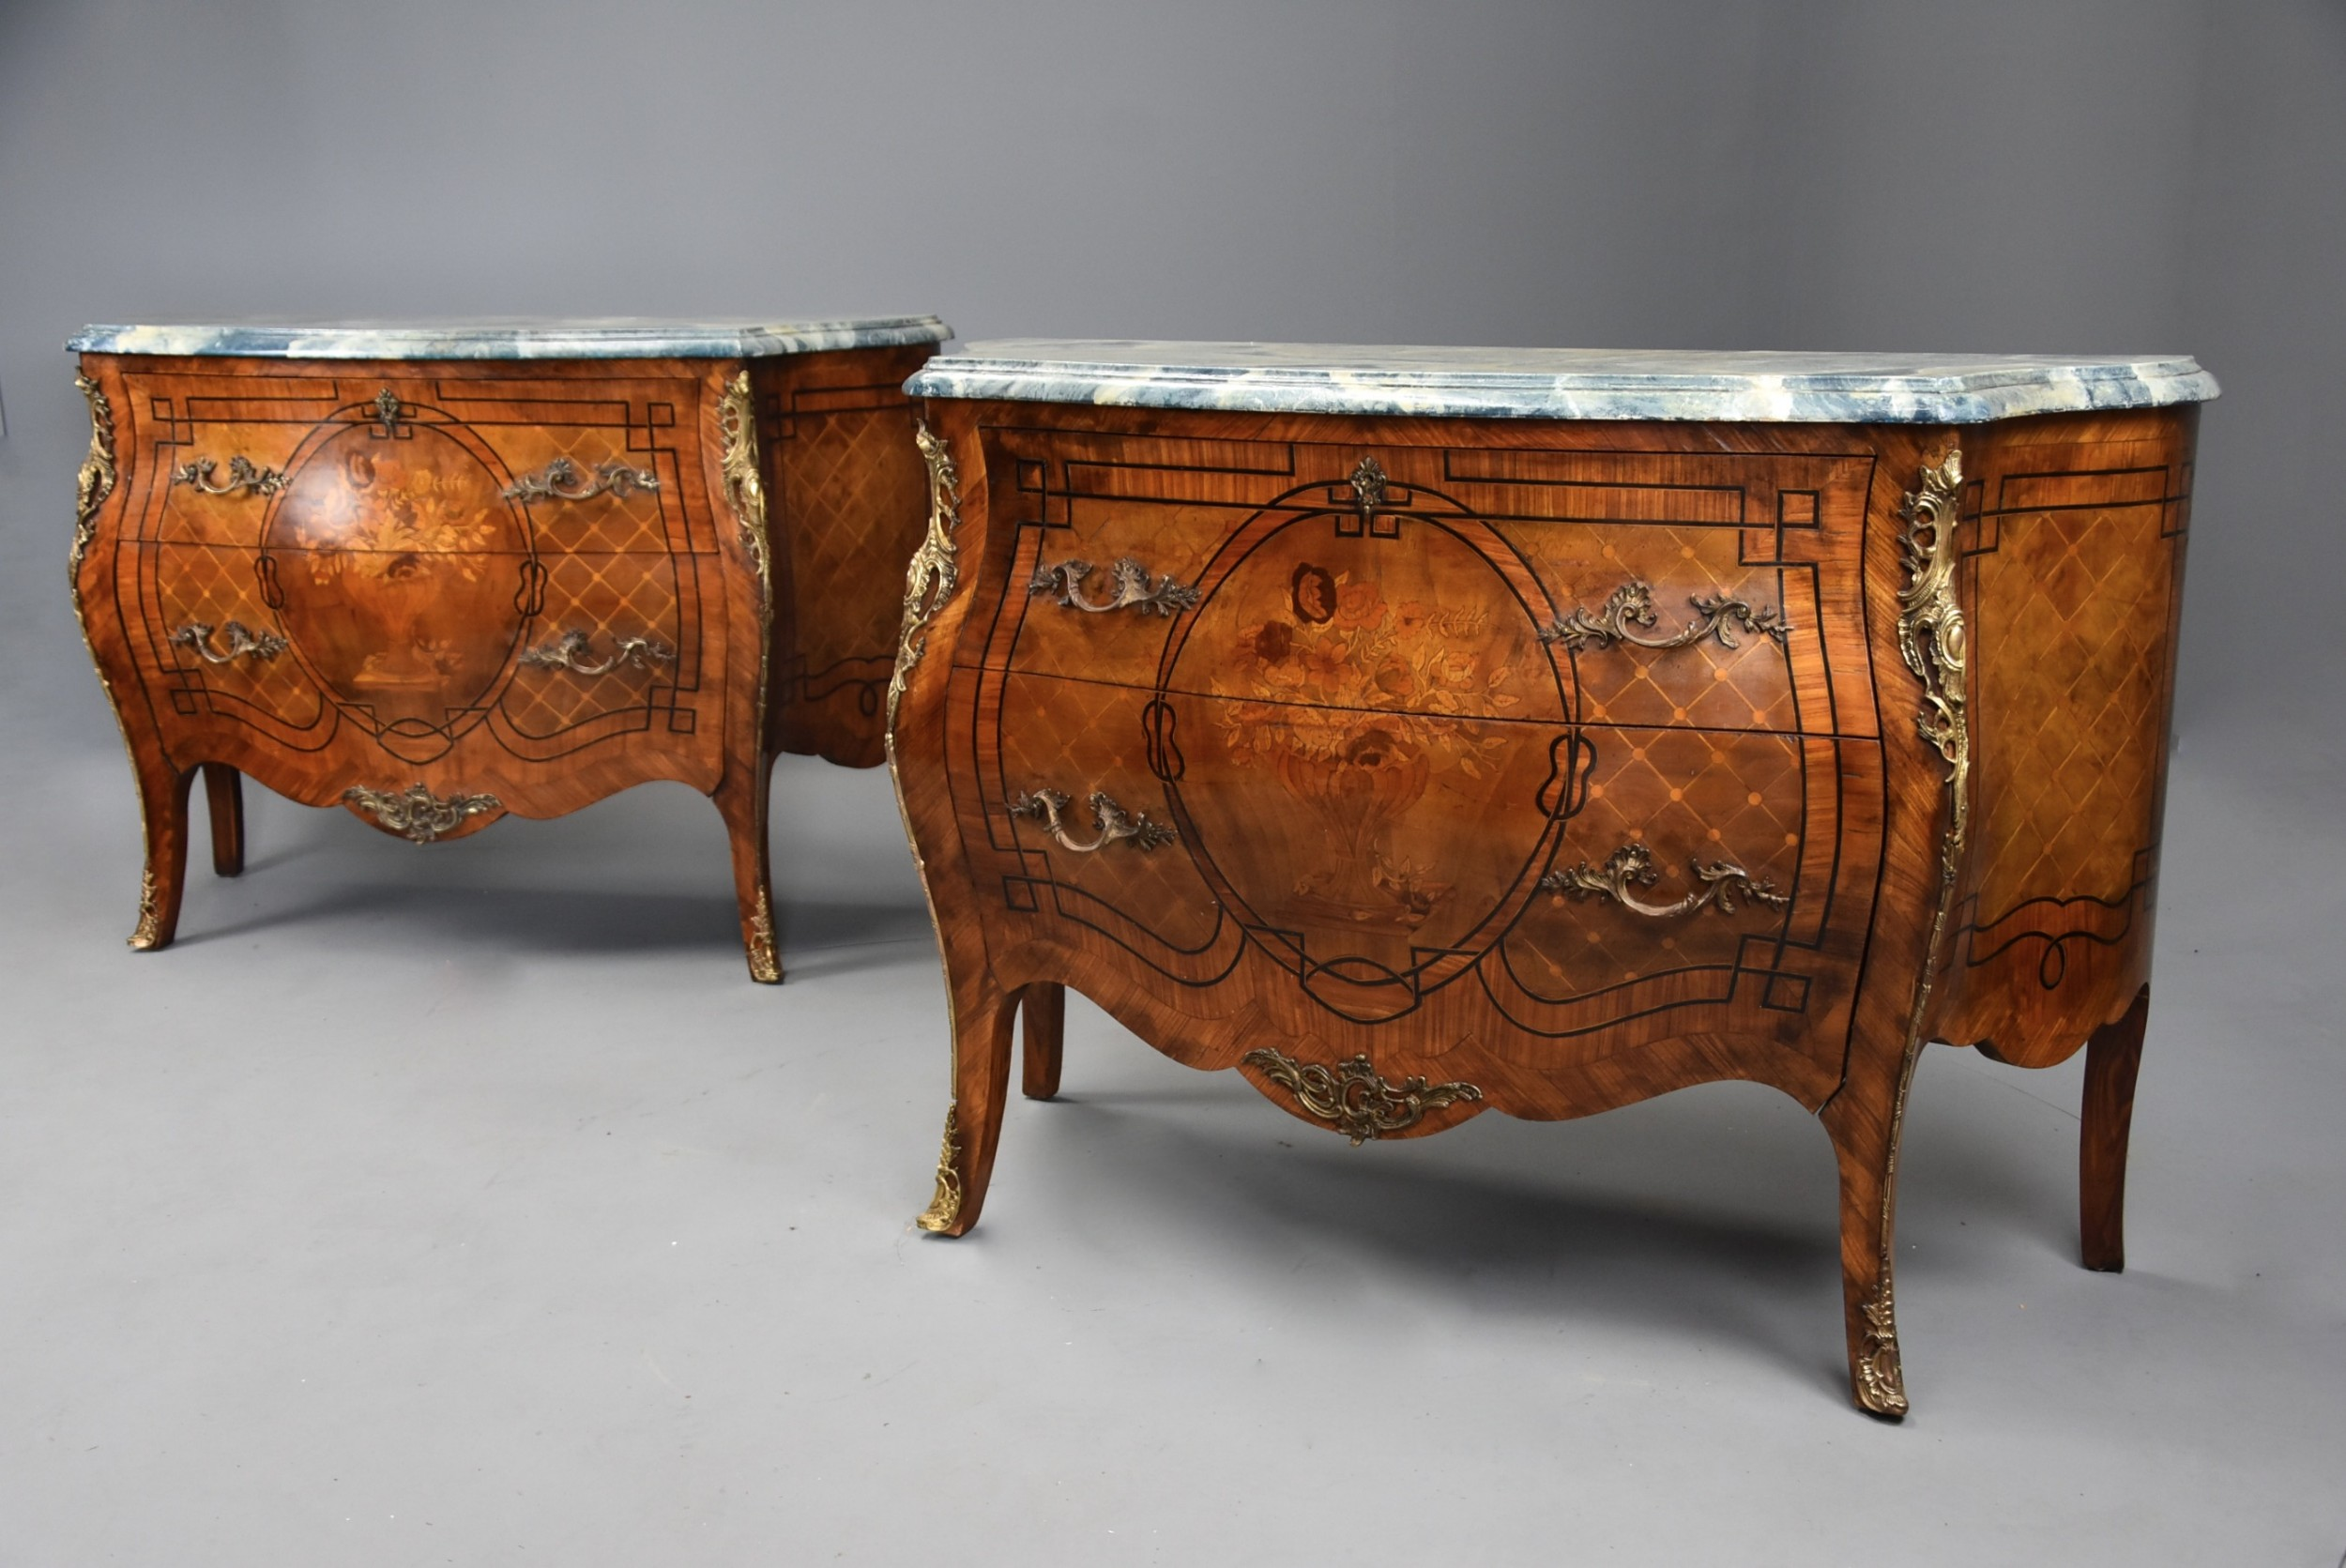 pair of french early 20th century highly decorative kingwood bombe commodes